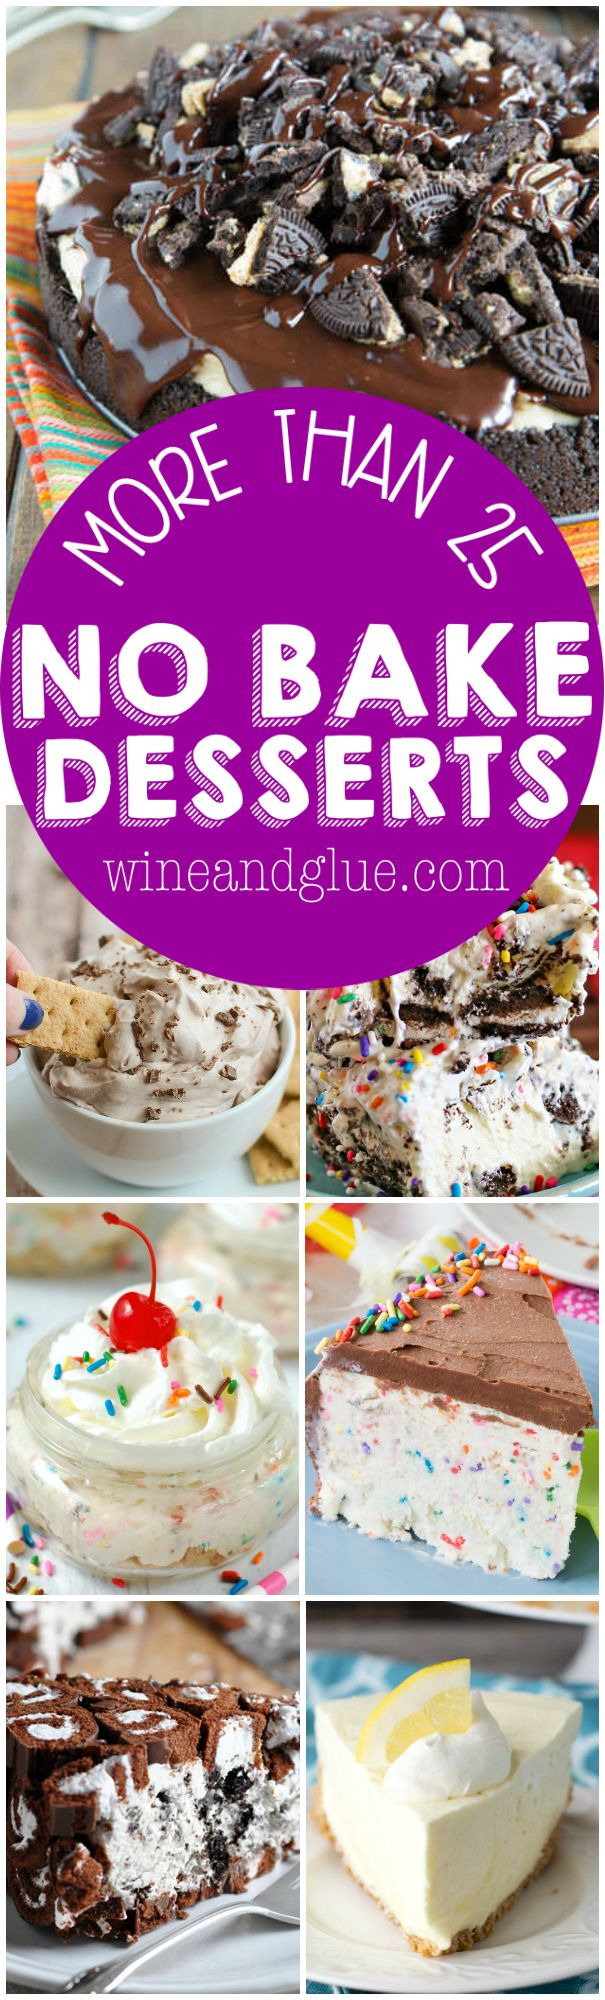 With all of these No Bake Dessert Recipes, you will be able to have sweets all summer without turning on your oven!